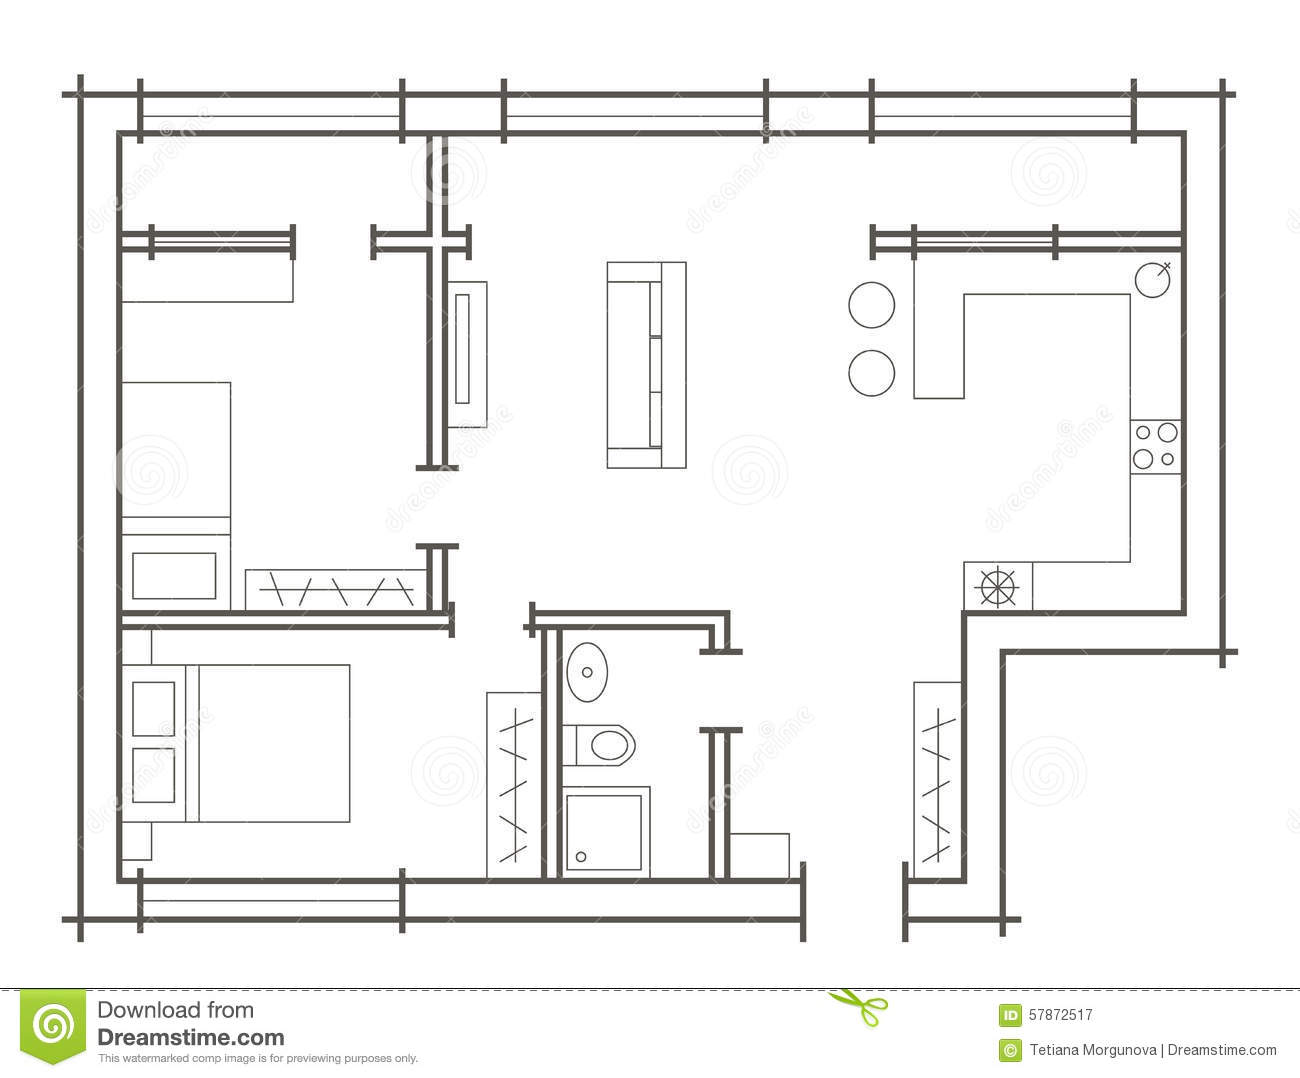 plan sketch of two bedroom apartment stock vector On 2 room house plan sketches